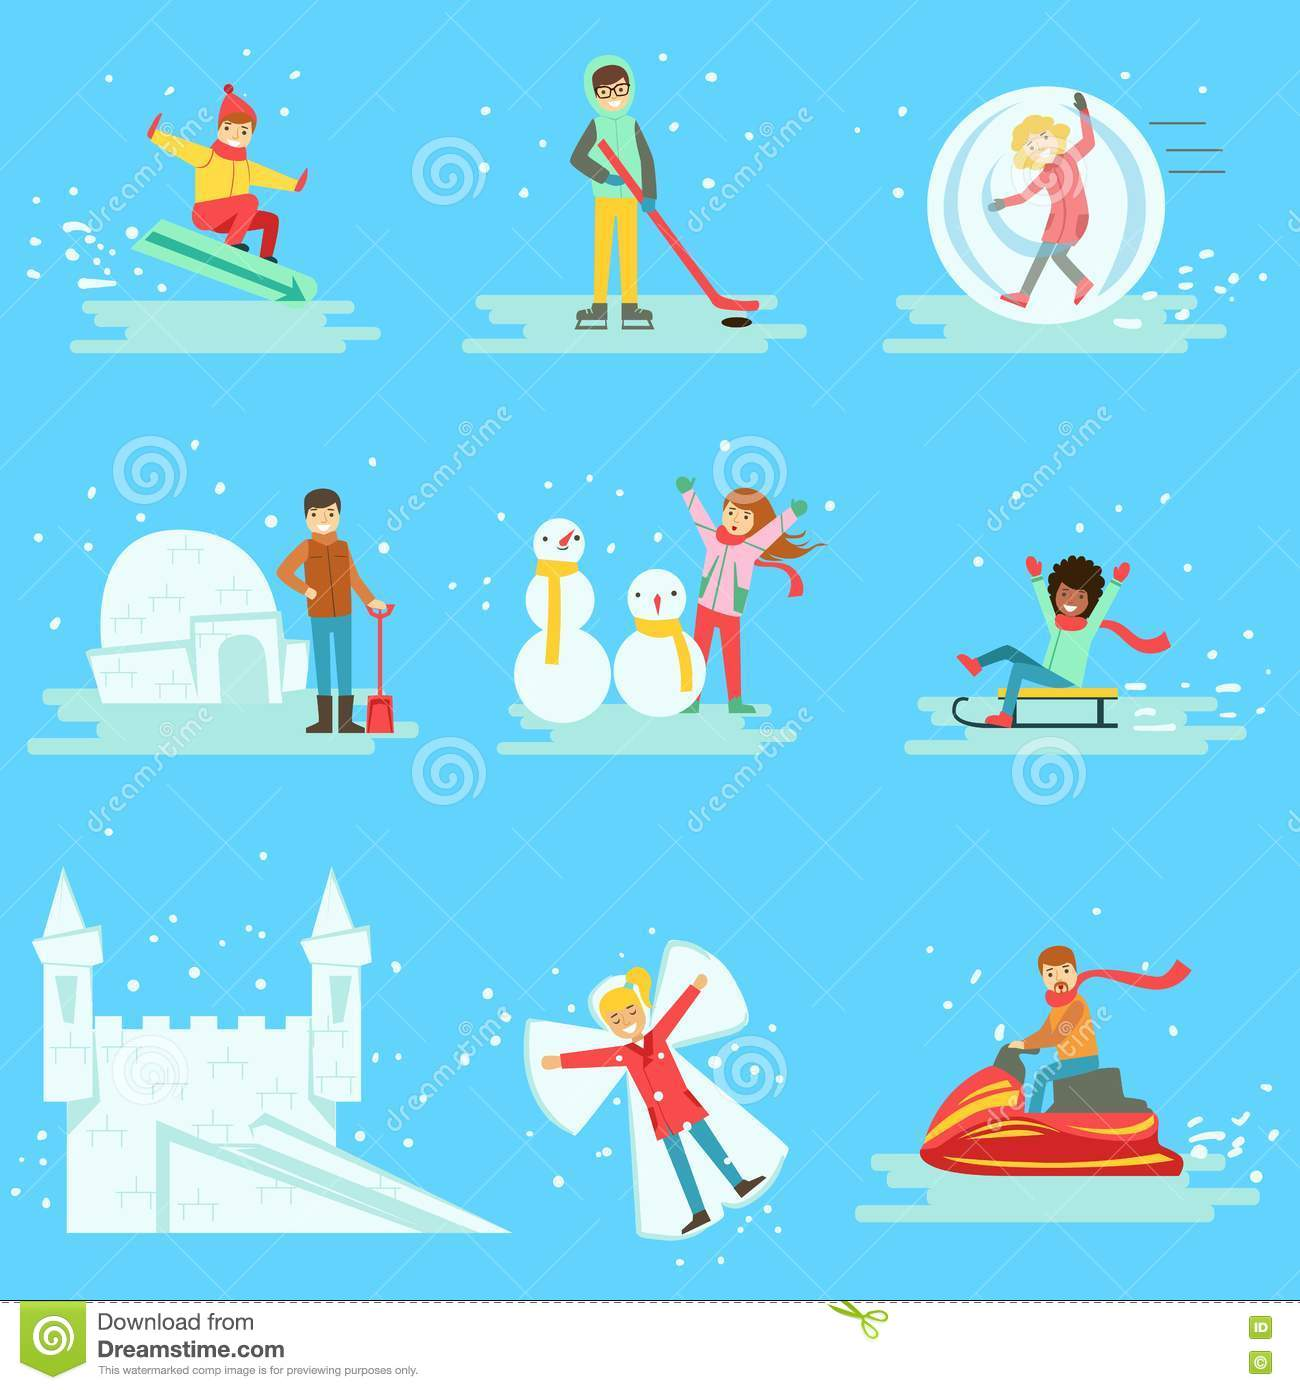 People Having Fun In Snow In Winter Collection Of Illustrations